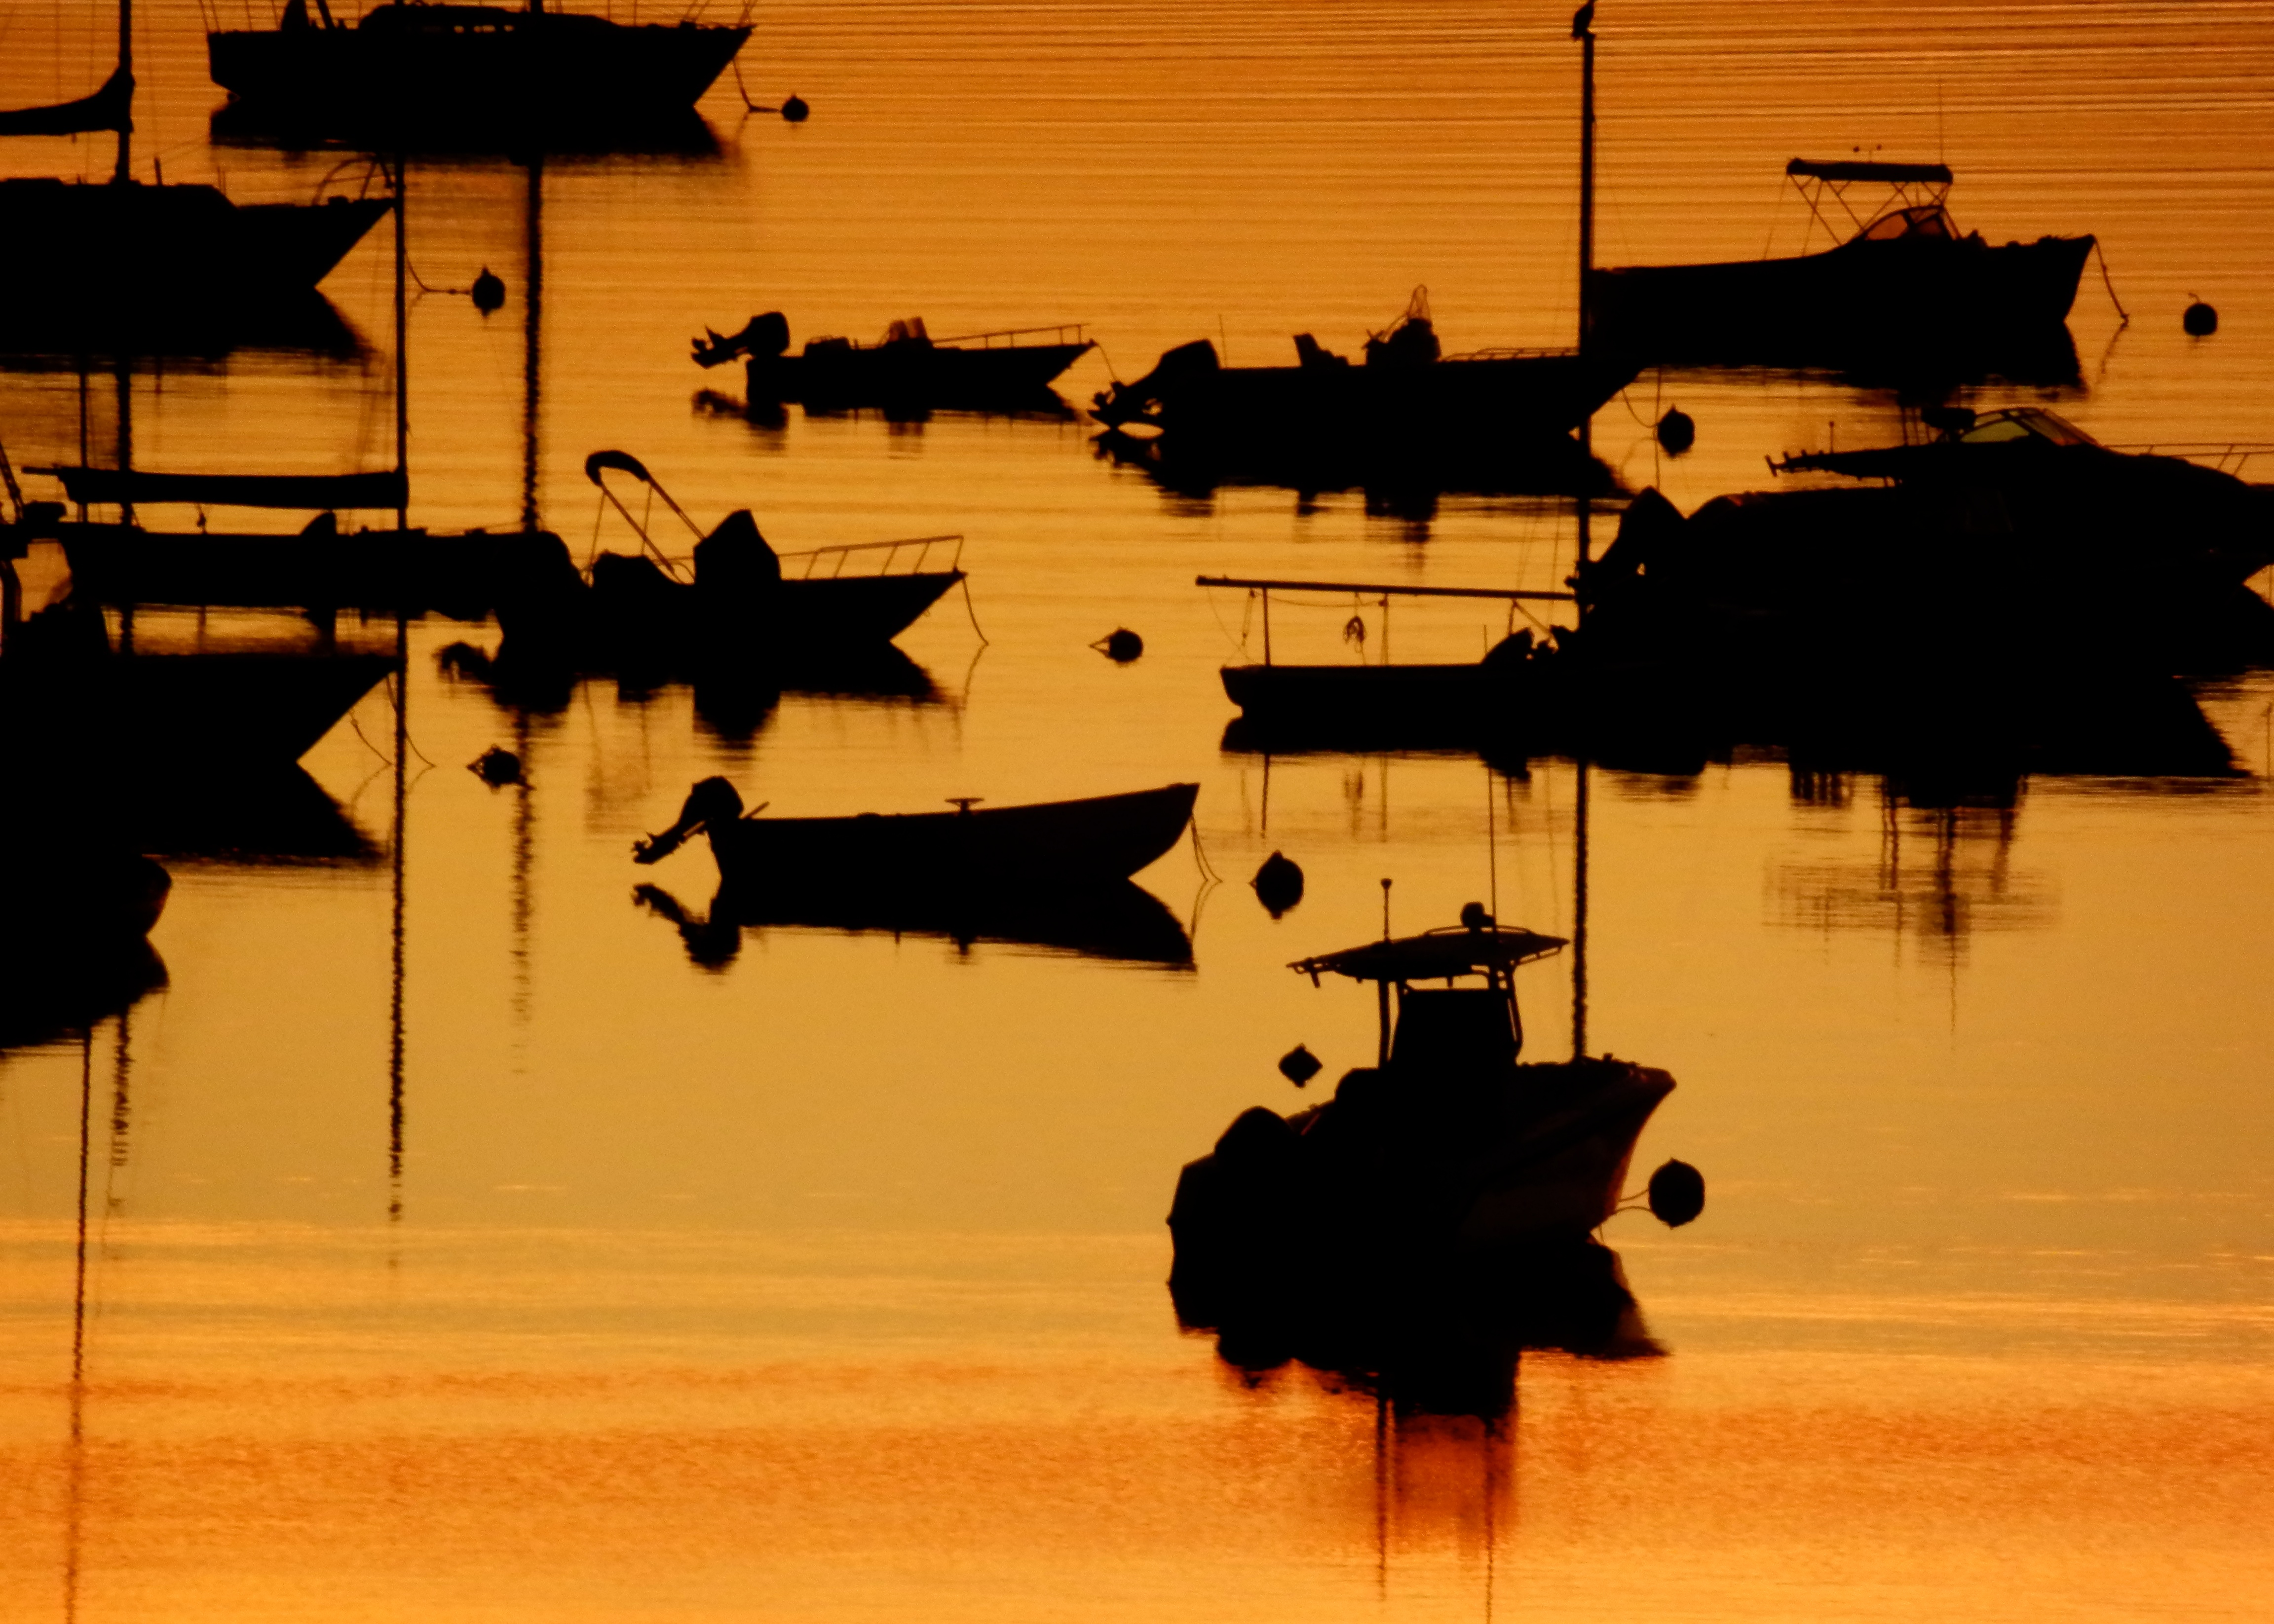 boats at anchor author lucke charlie are getti